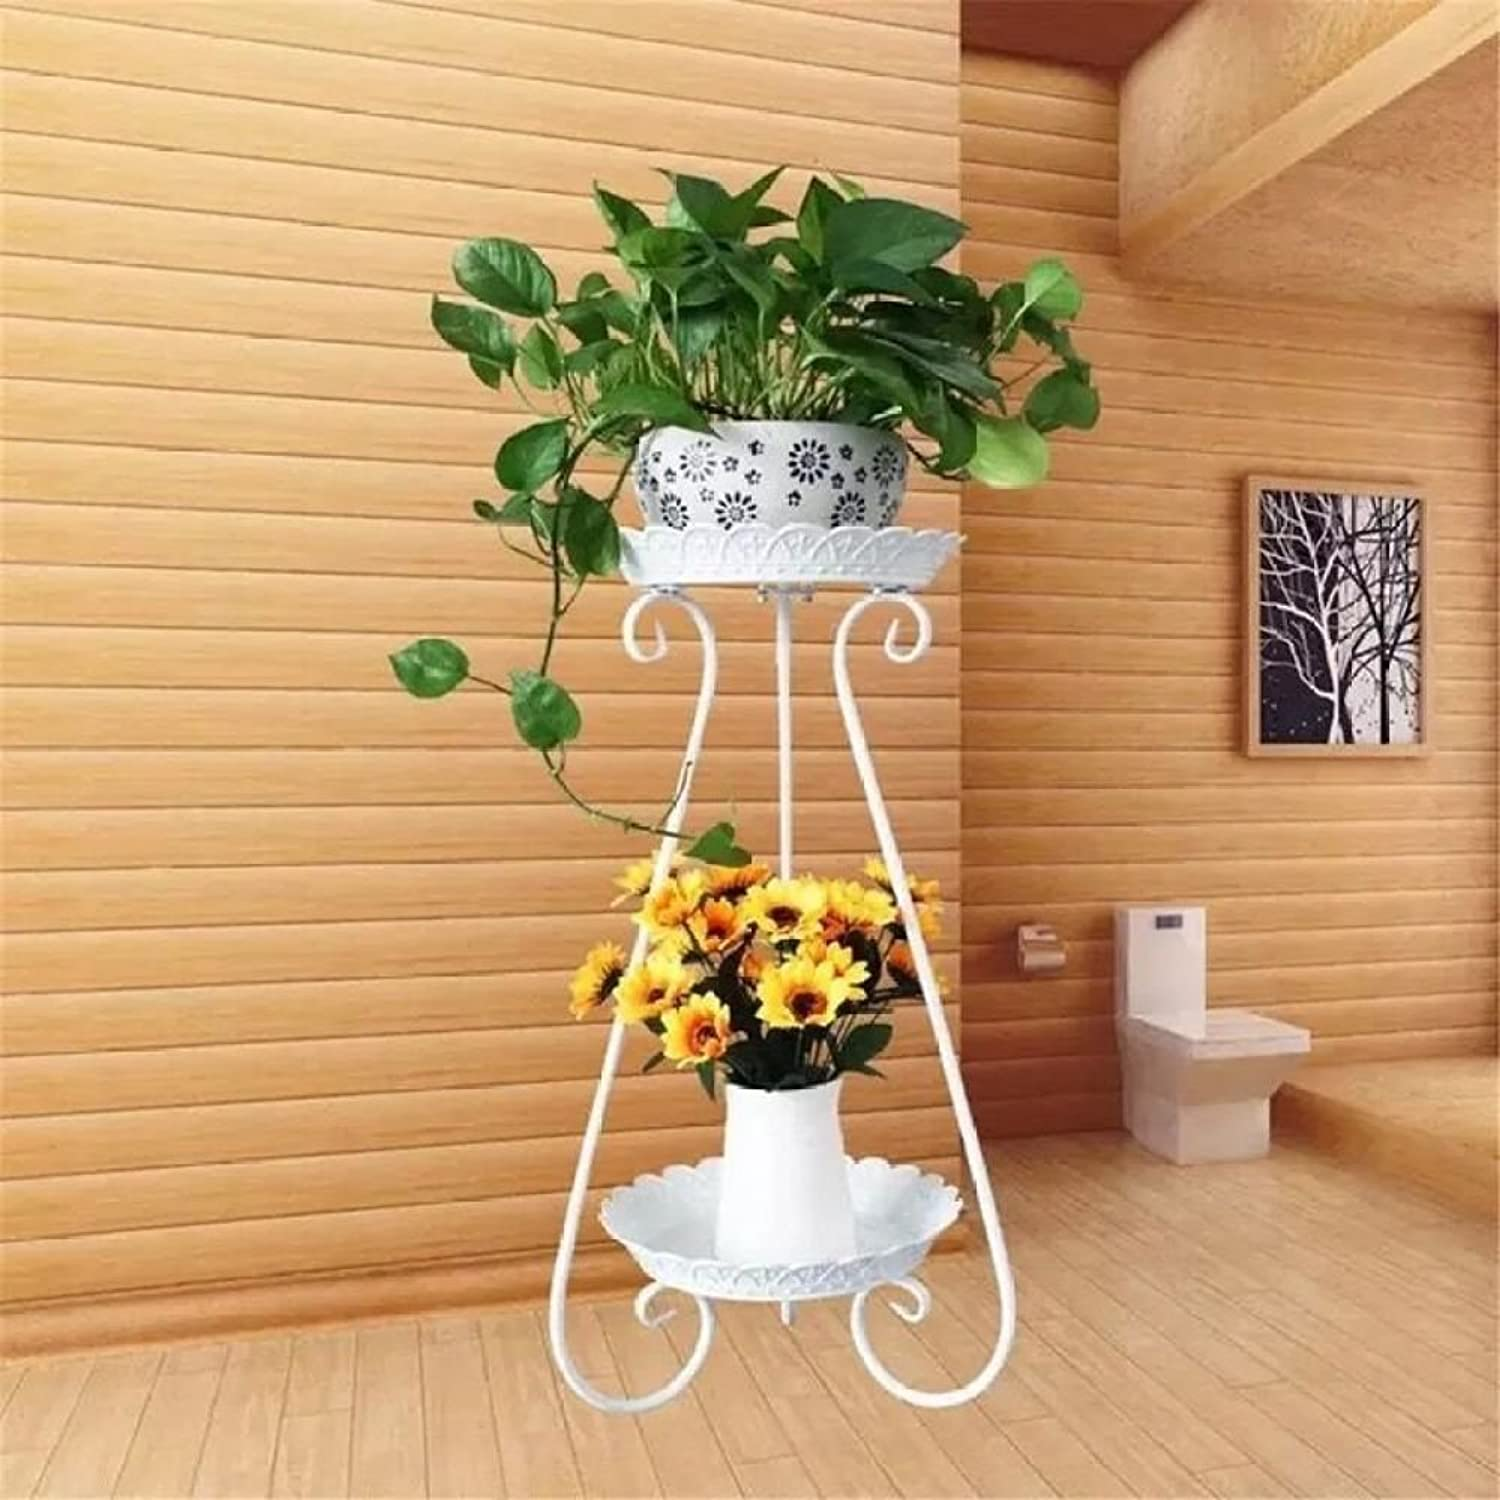 MBD European Flower Stand, Indoor Outdoor Flower Rack Wrought Iron 2 Plant Flower Pots Holder Plant Shelves Drop-Floor Living Room Balcony Flower Pot Rack (color   White, Size   S)